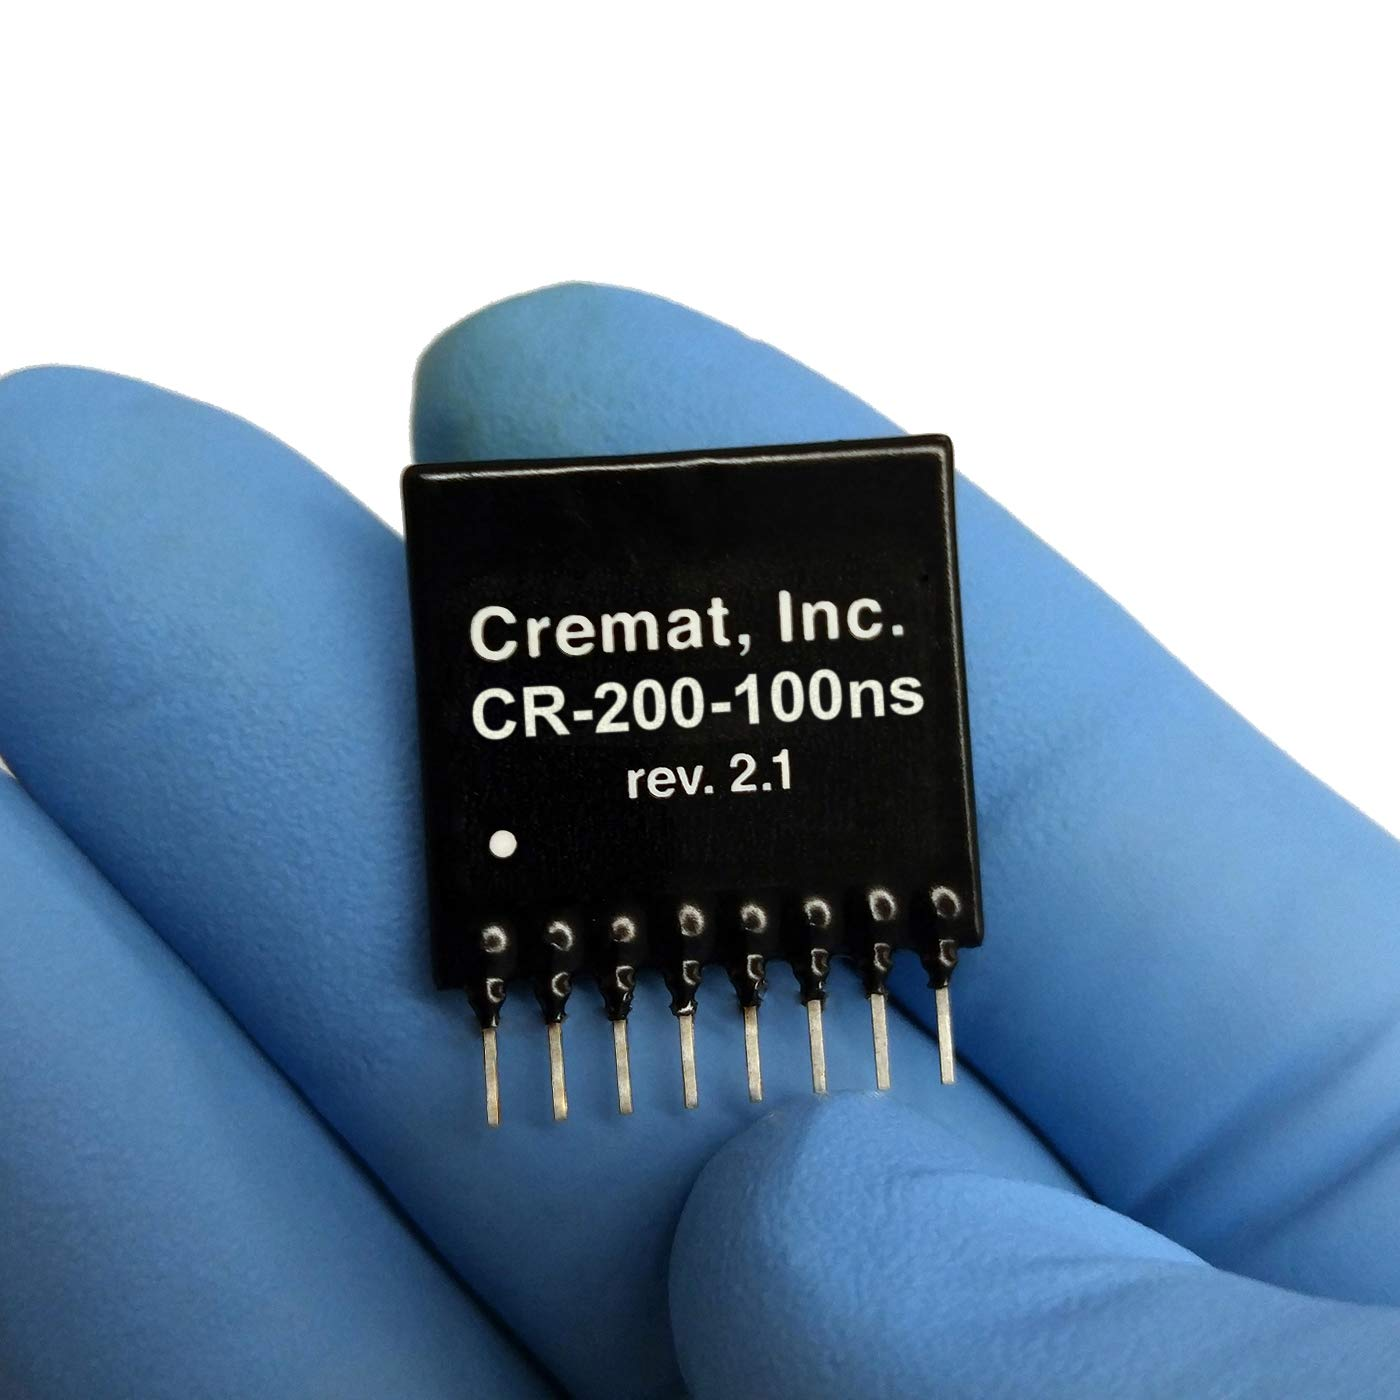 CR-200-100ns-R2.1 Shaping Amplifier Module, 100ns Shaping time